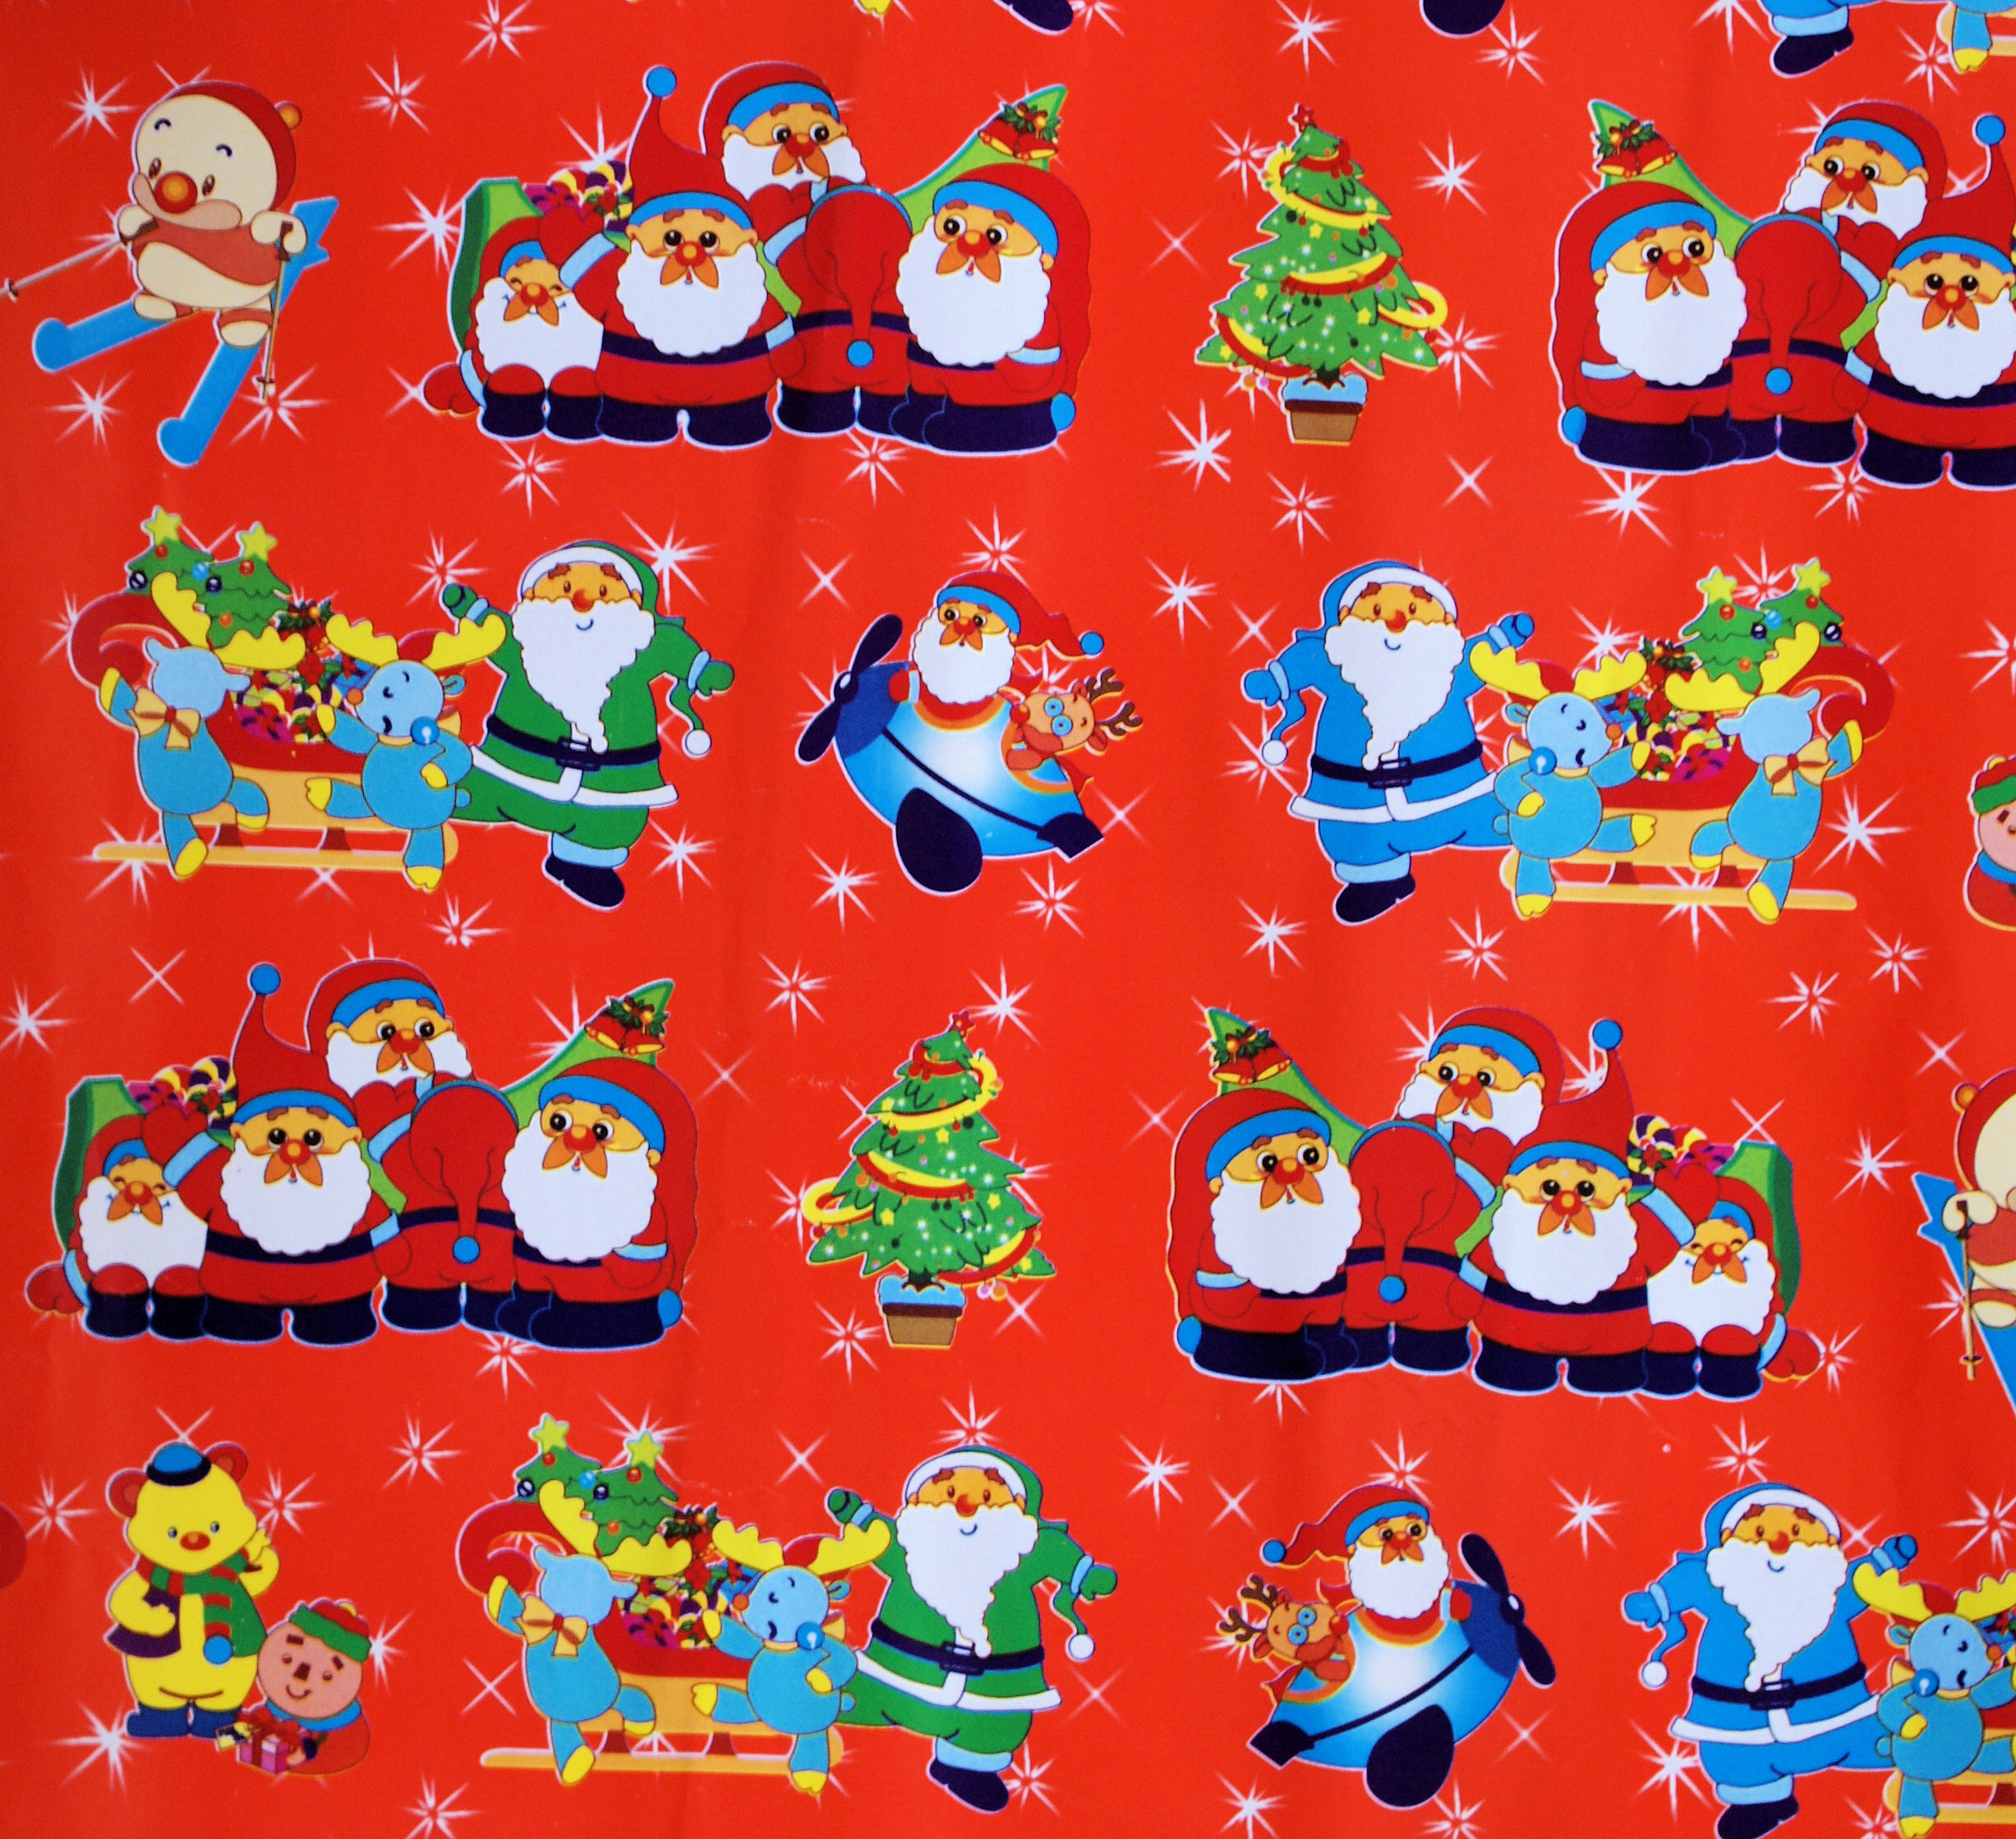 Wrapping Paper - 2454x2239 - jpeg